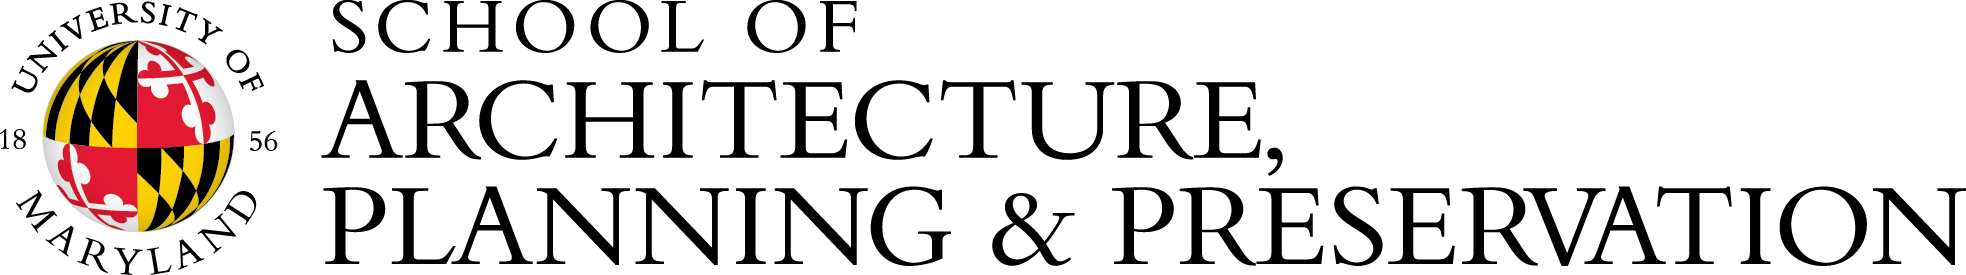 School of Architecture, Planning & Preservation logo